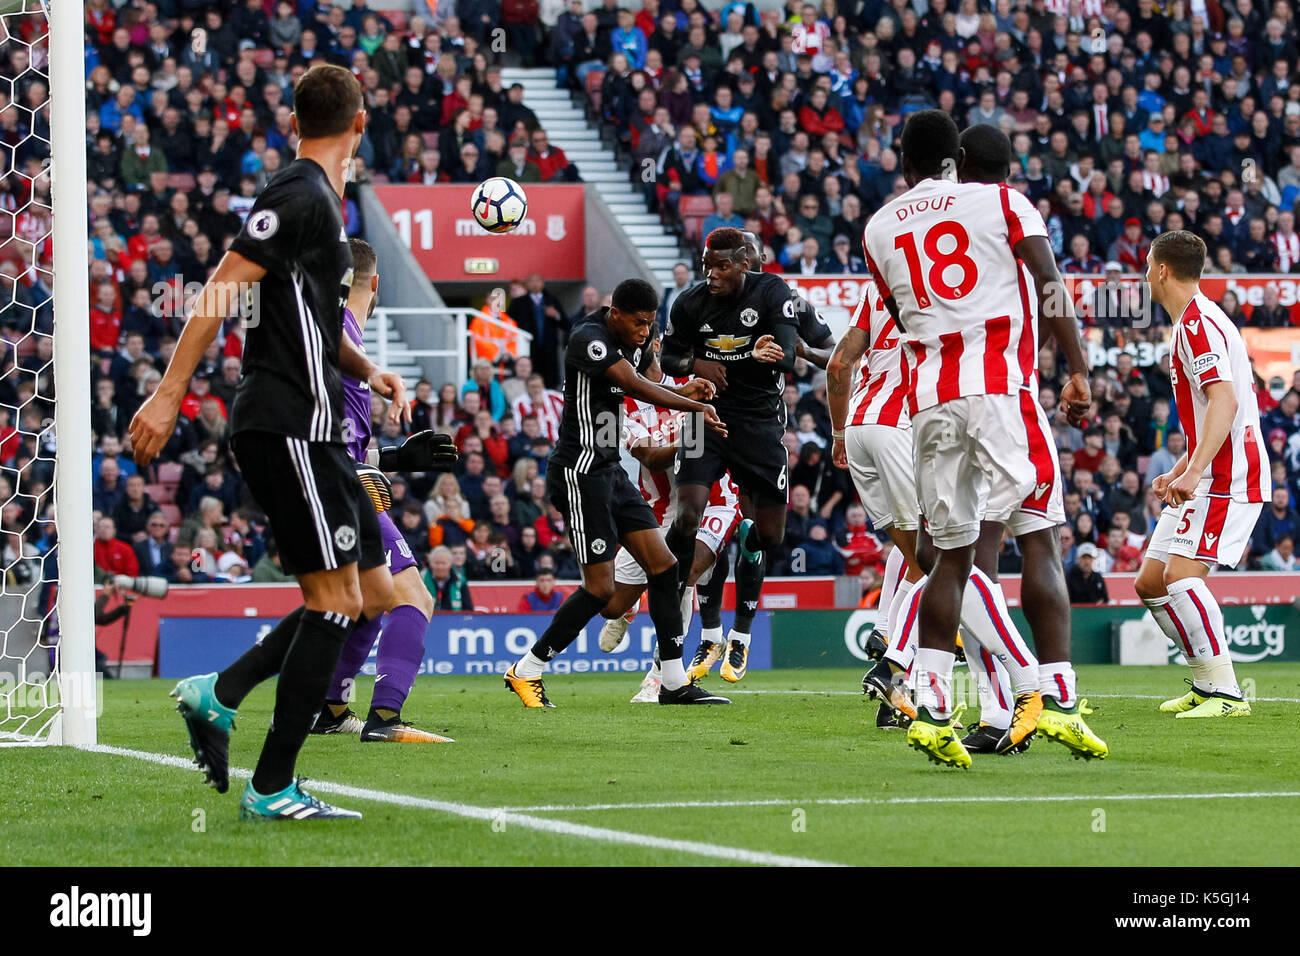 Stoke-on-Trent, UK. 09th Sep, 2017. Paul Pogba of Manchester United scores his side's first goal to equalise and make the score 1-1 during the Premier League match between Stoke City and Manchester United at Bet365 Stadium on September 9th 2017 in Stoke-on-Trent, England. Credit: PHC Images/Alamy Live News - Stock Image